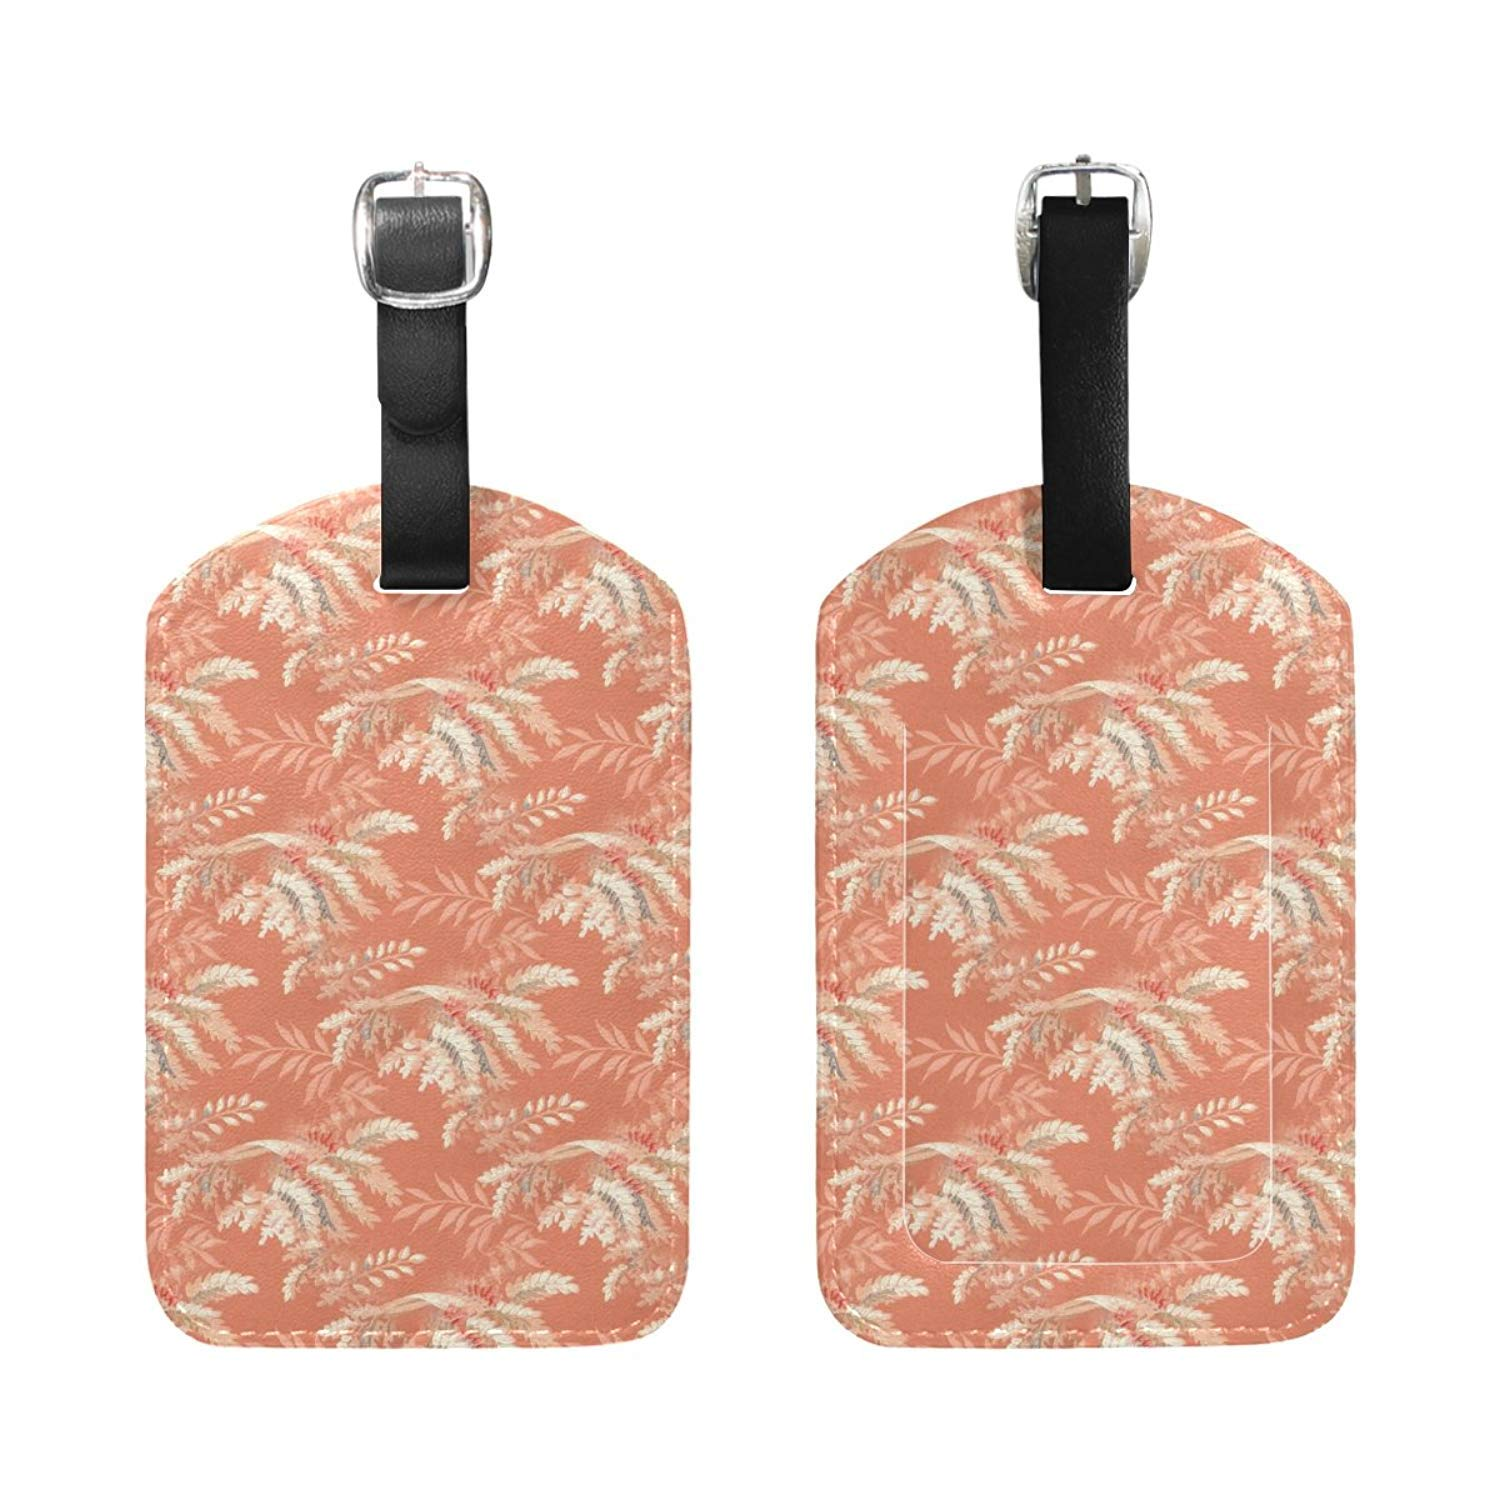 GoldK Tie Dye Perfection Leather Luggage Tags Baggage Bag Instrument Tag Travel Labels Accessories with Privacy Cover